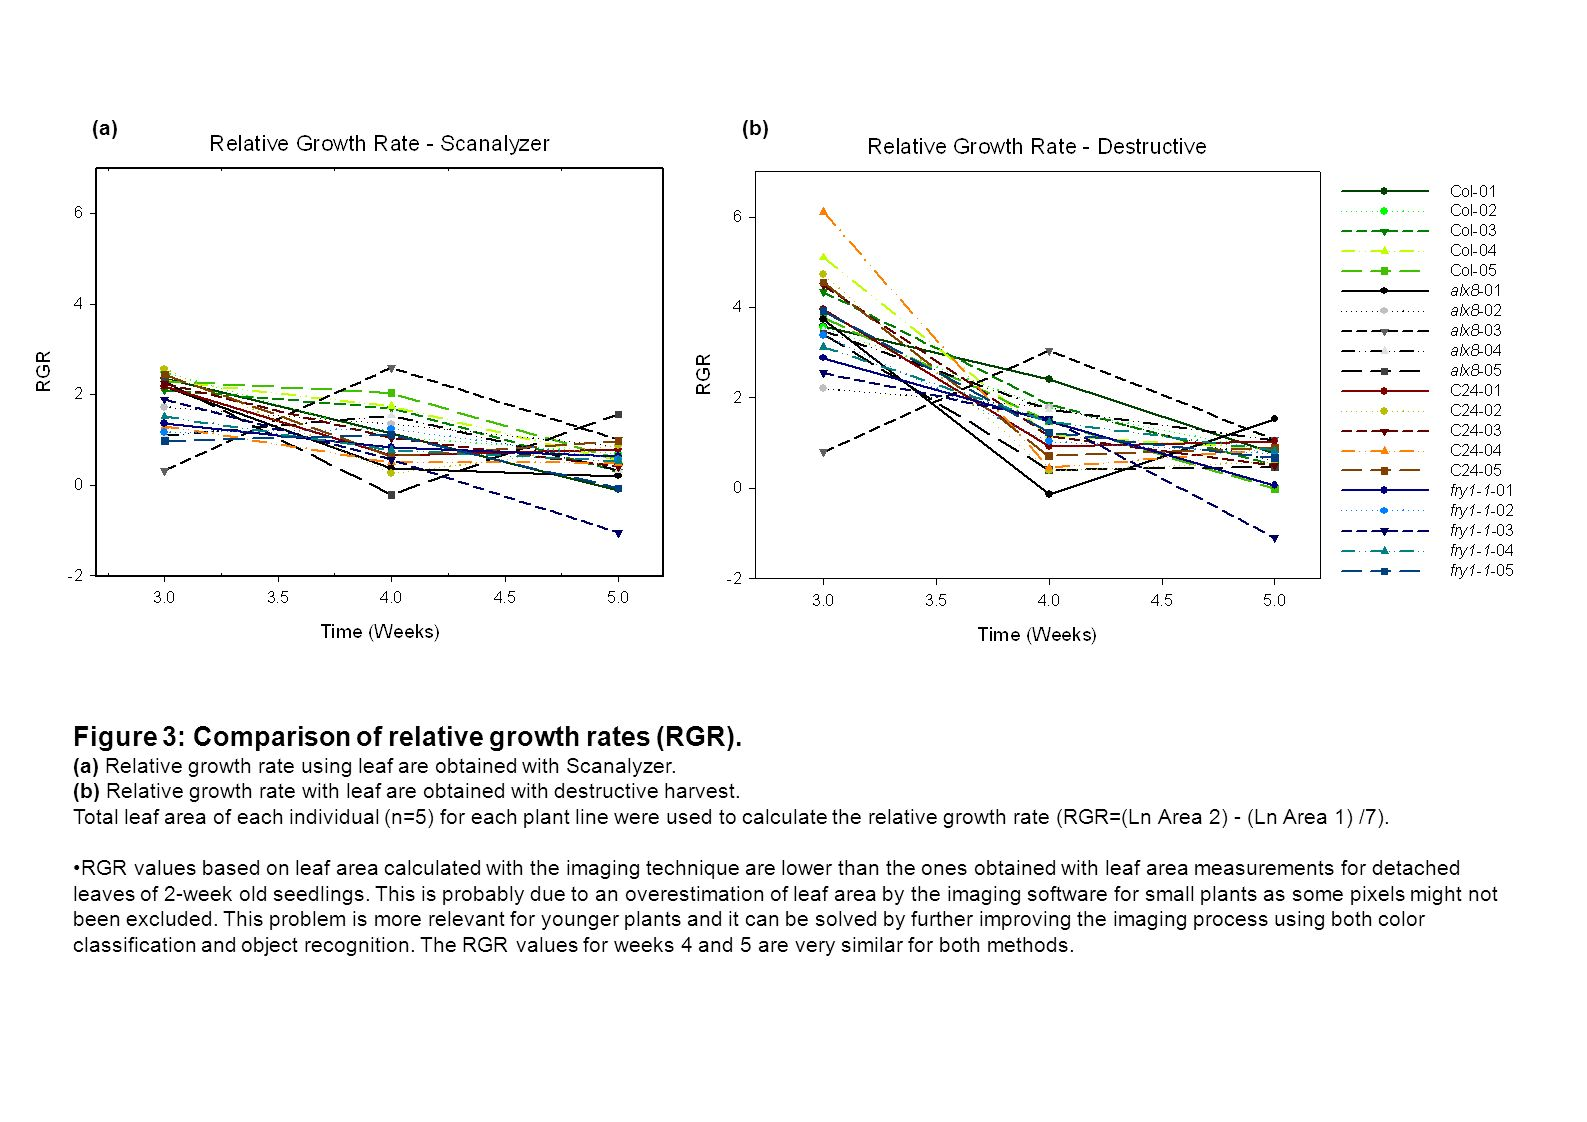 Figure 3: Comparison of relative growth rates (RGR).